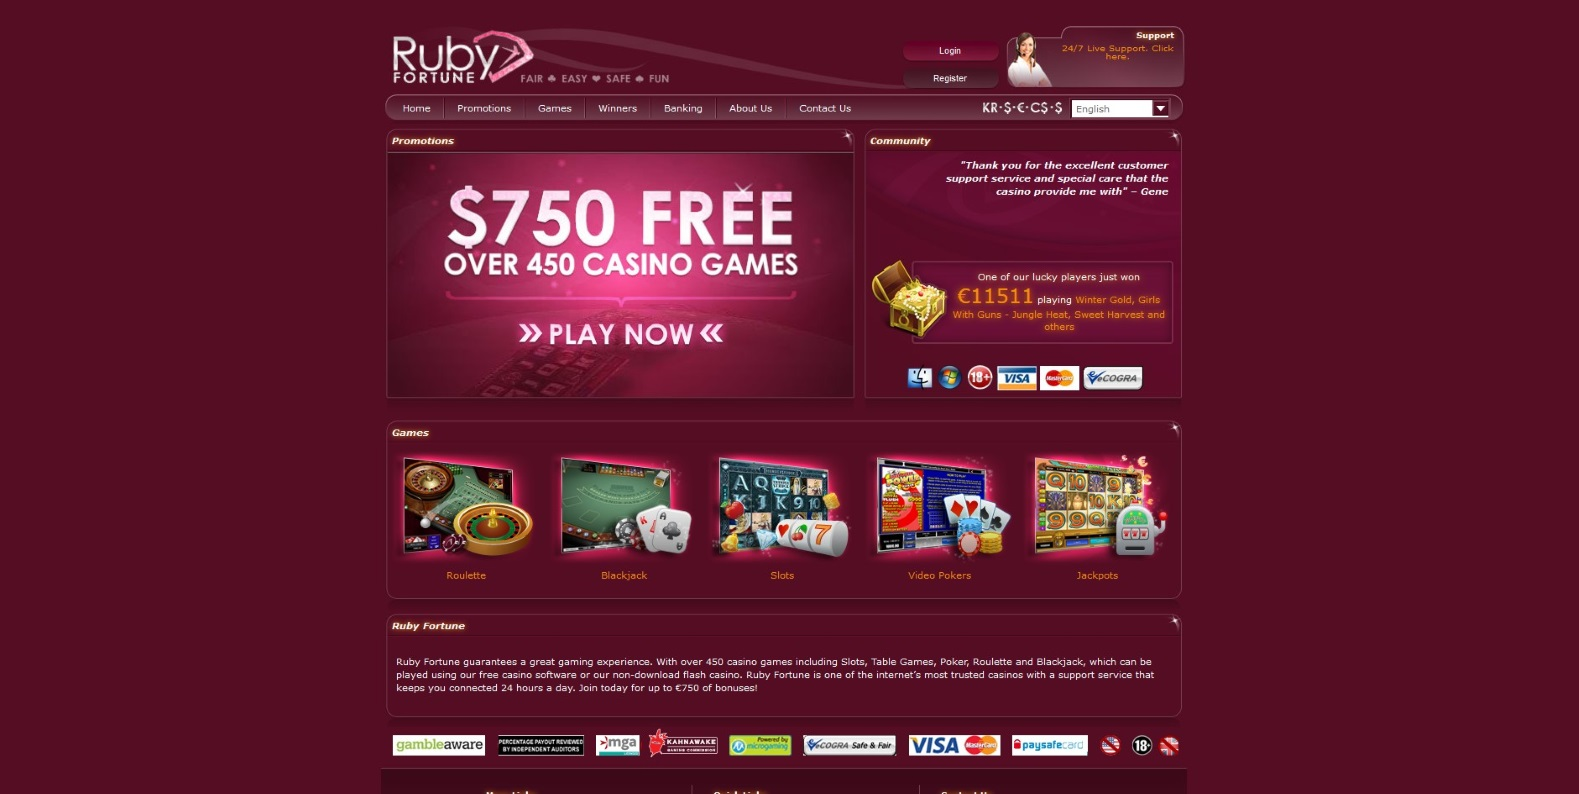 The Home Page of Ruby Fortune Casino